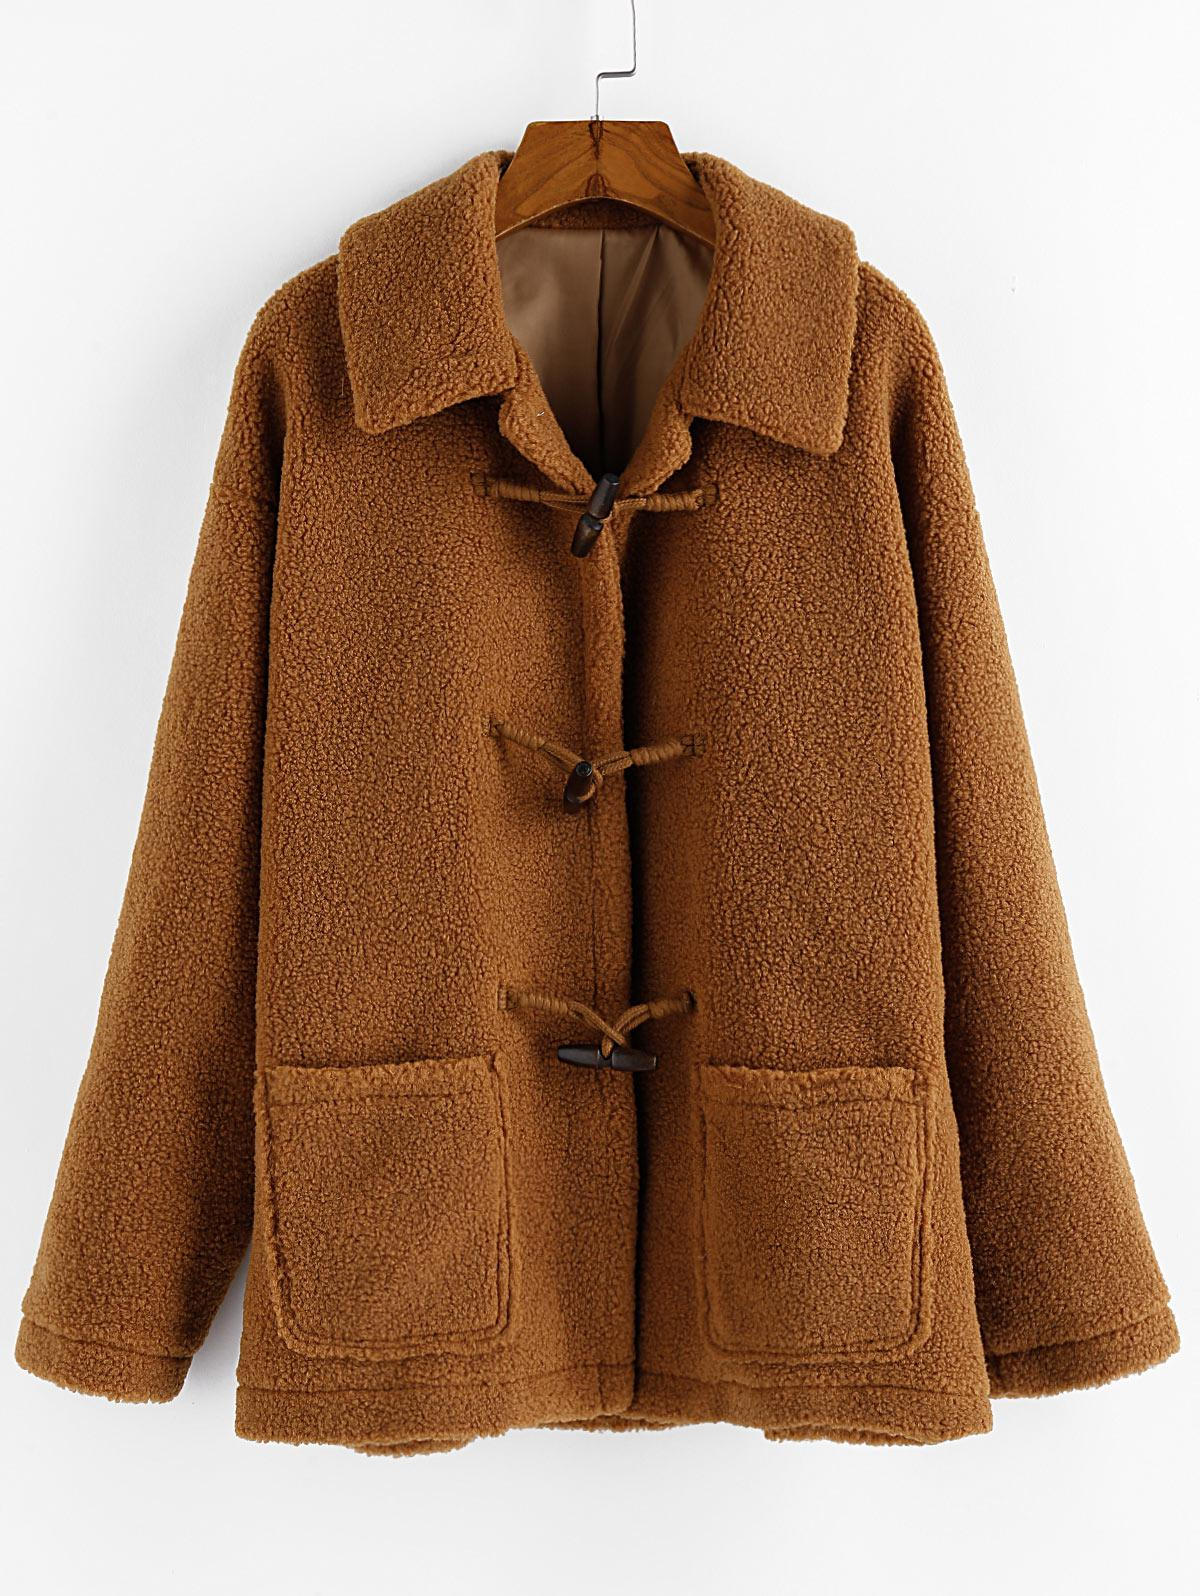 ZAFUL Pocket Faux Shearling Drop Shoulder Duffle Teddy Coat